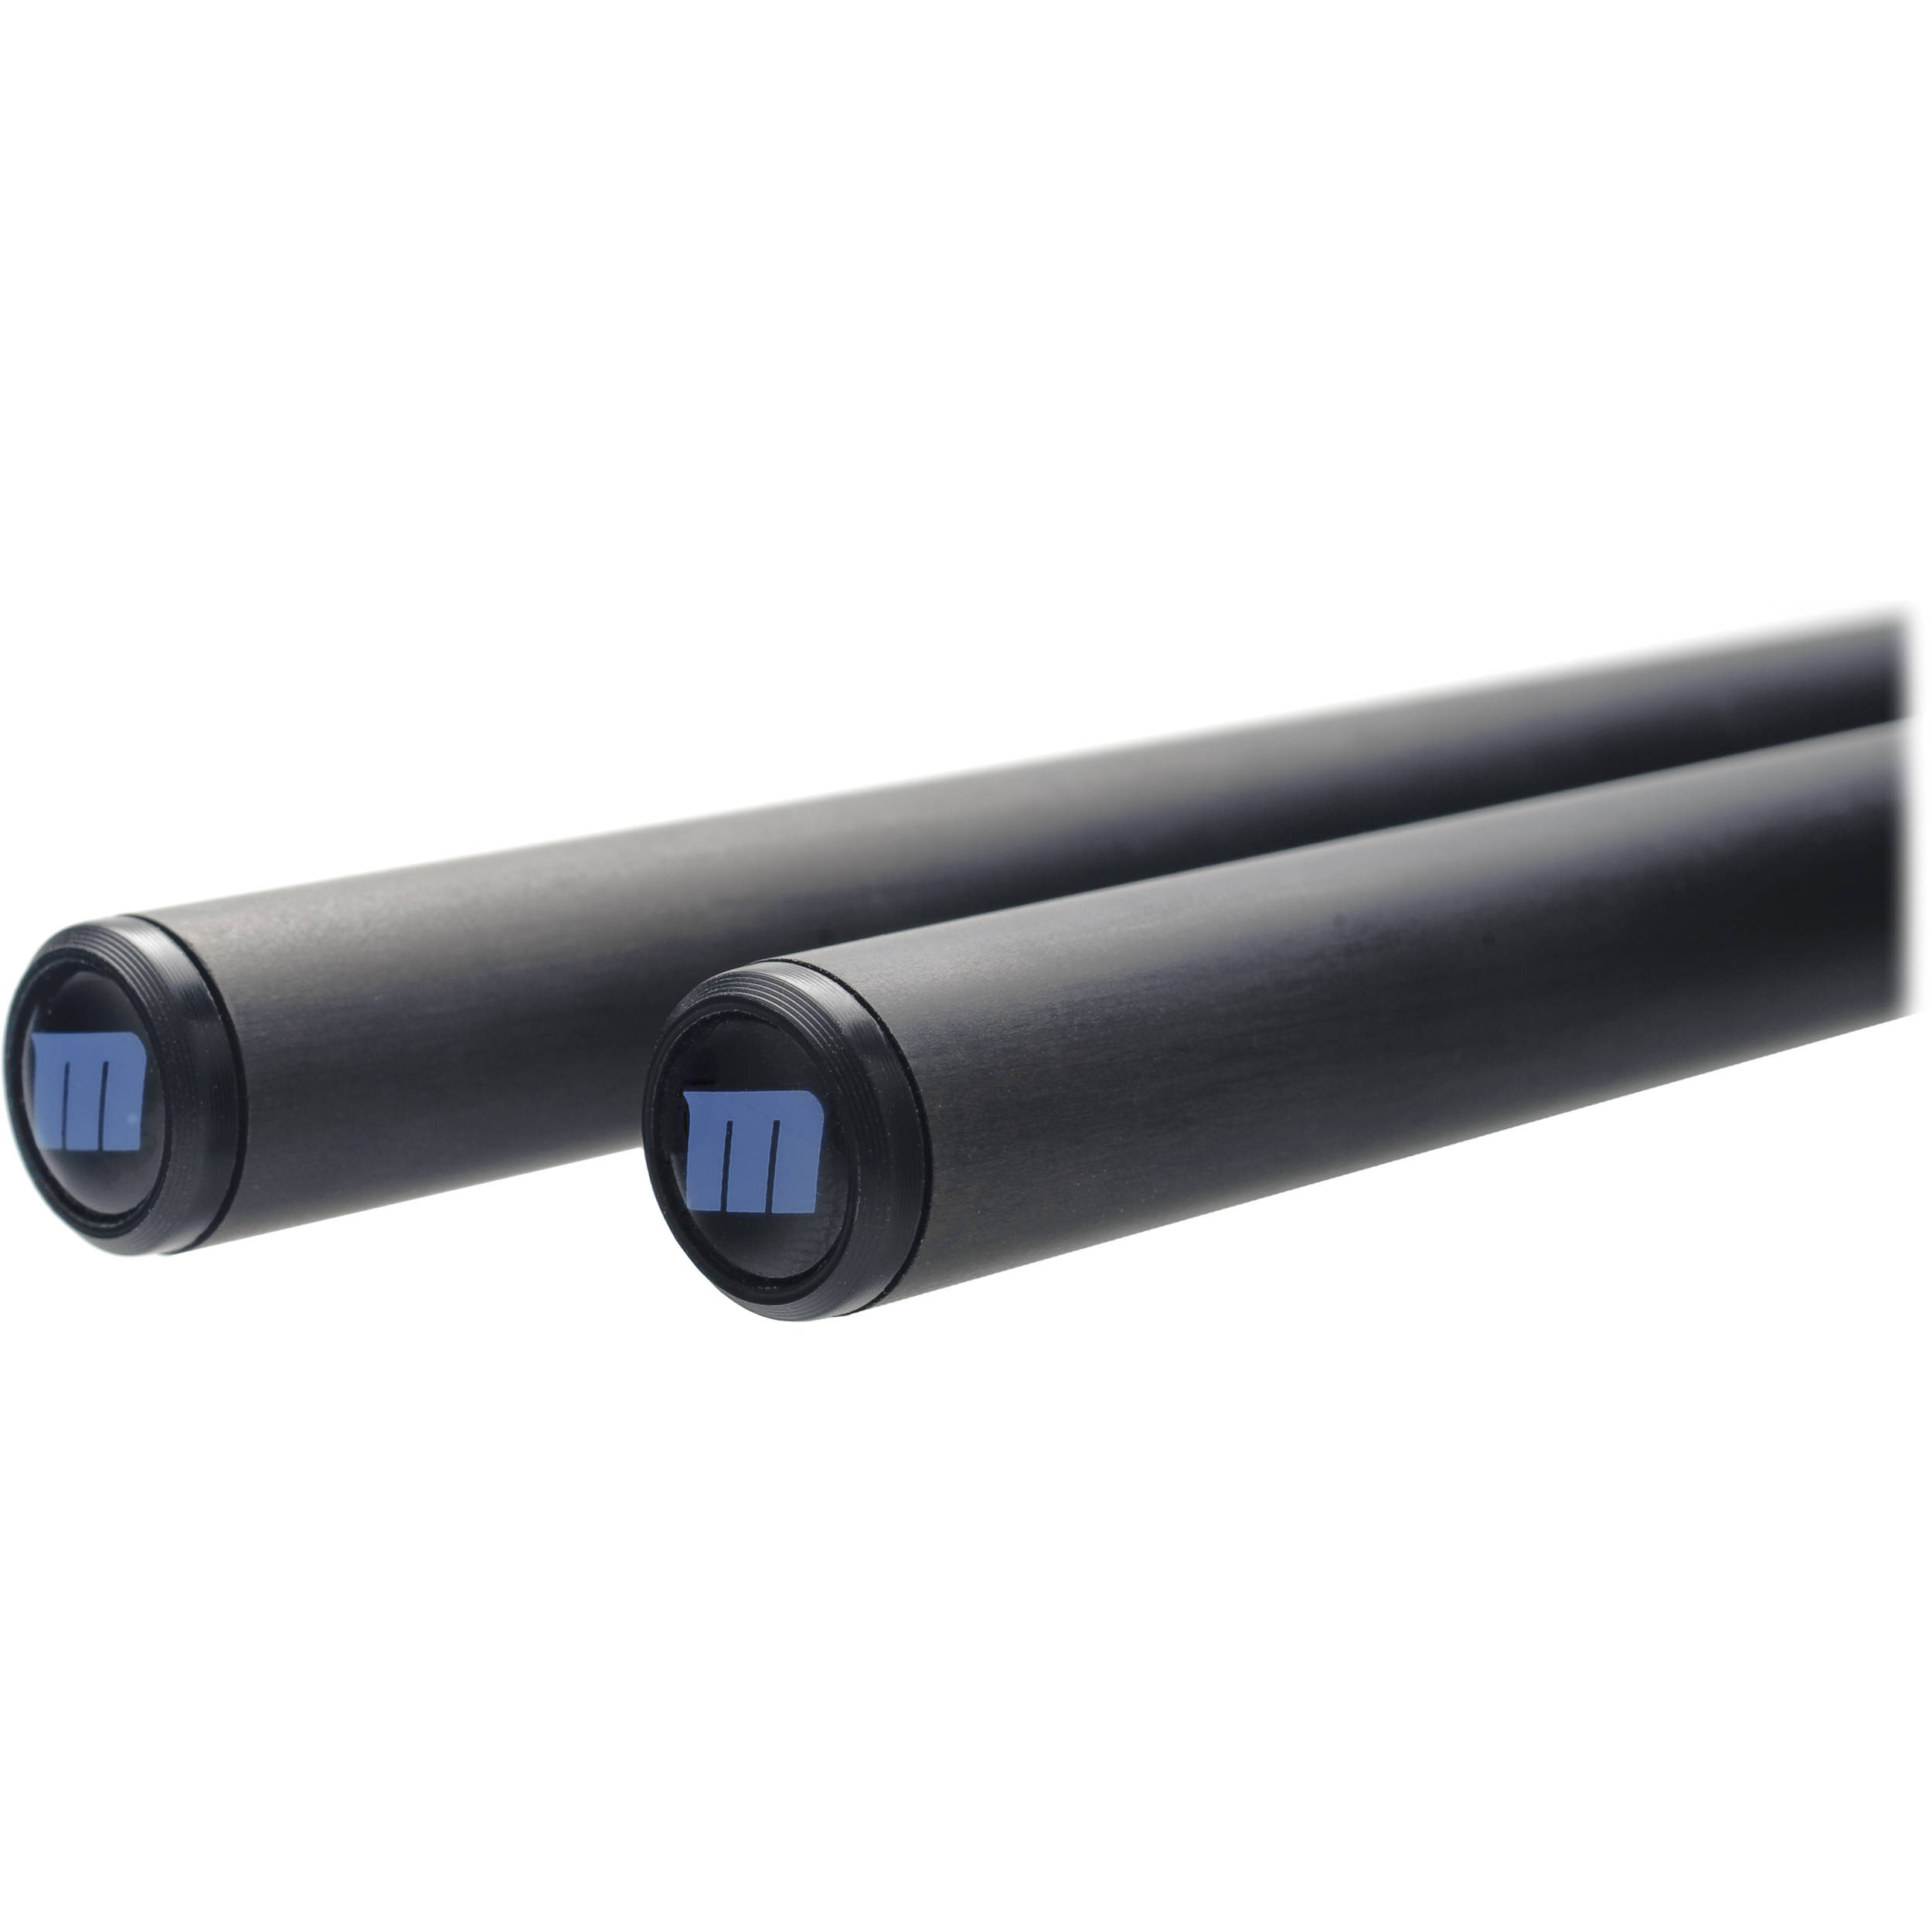 Redrock Micro 12'' 15mm carbon fibre rods (1 pair)